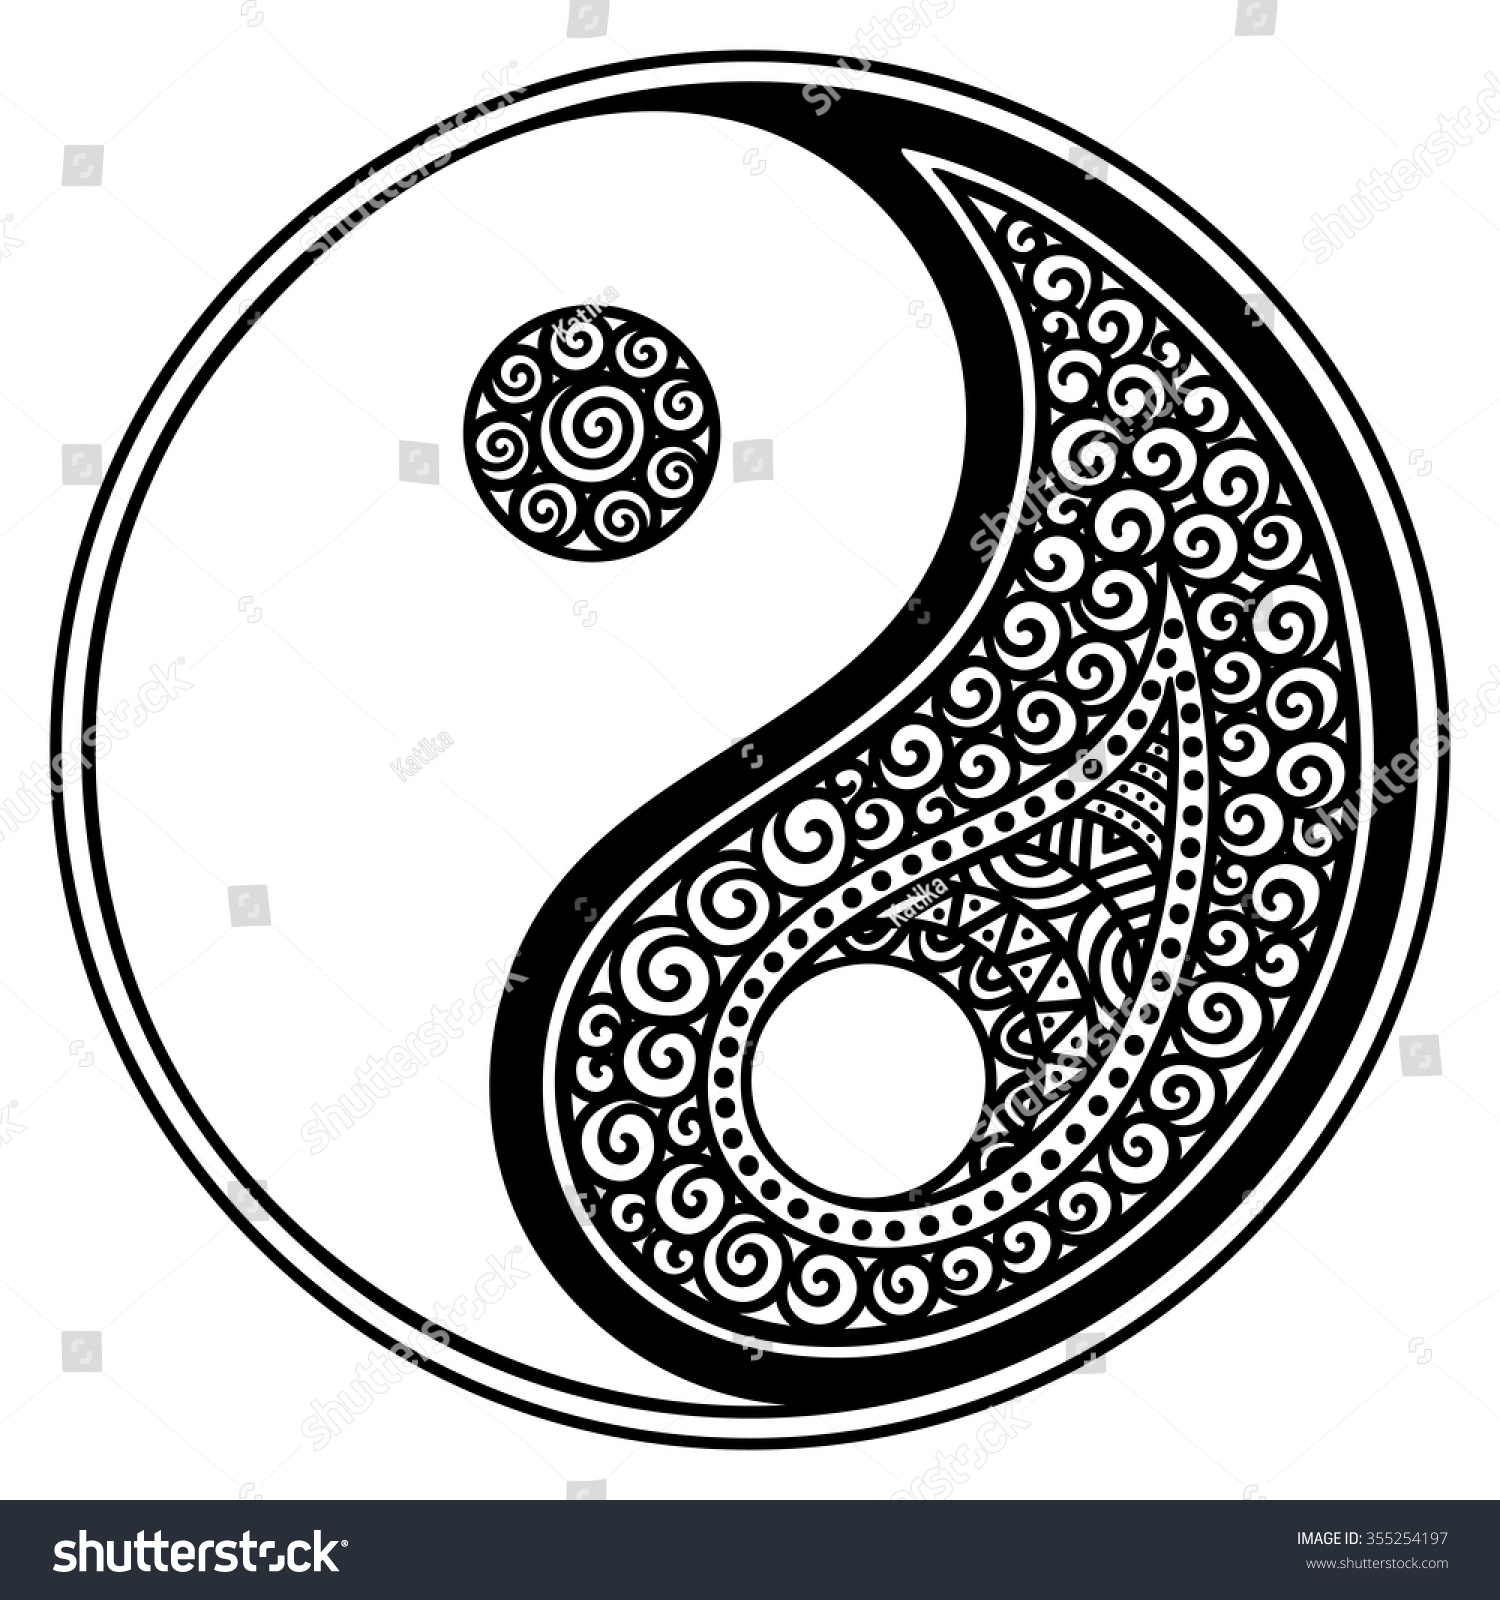 Yinyang decorative symbol hand drawn vintage stock vector for Architecture yin yang